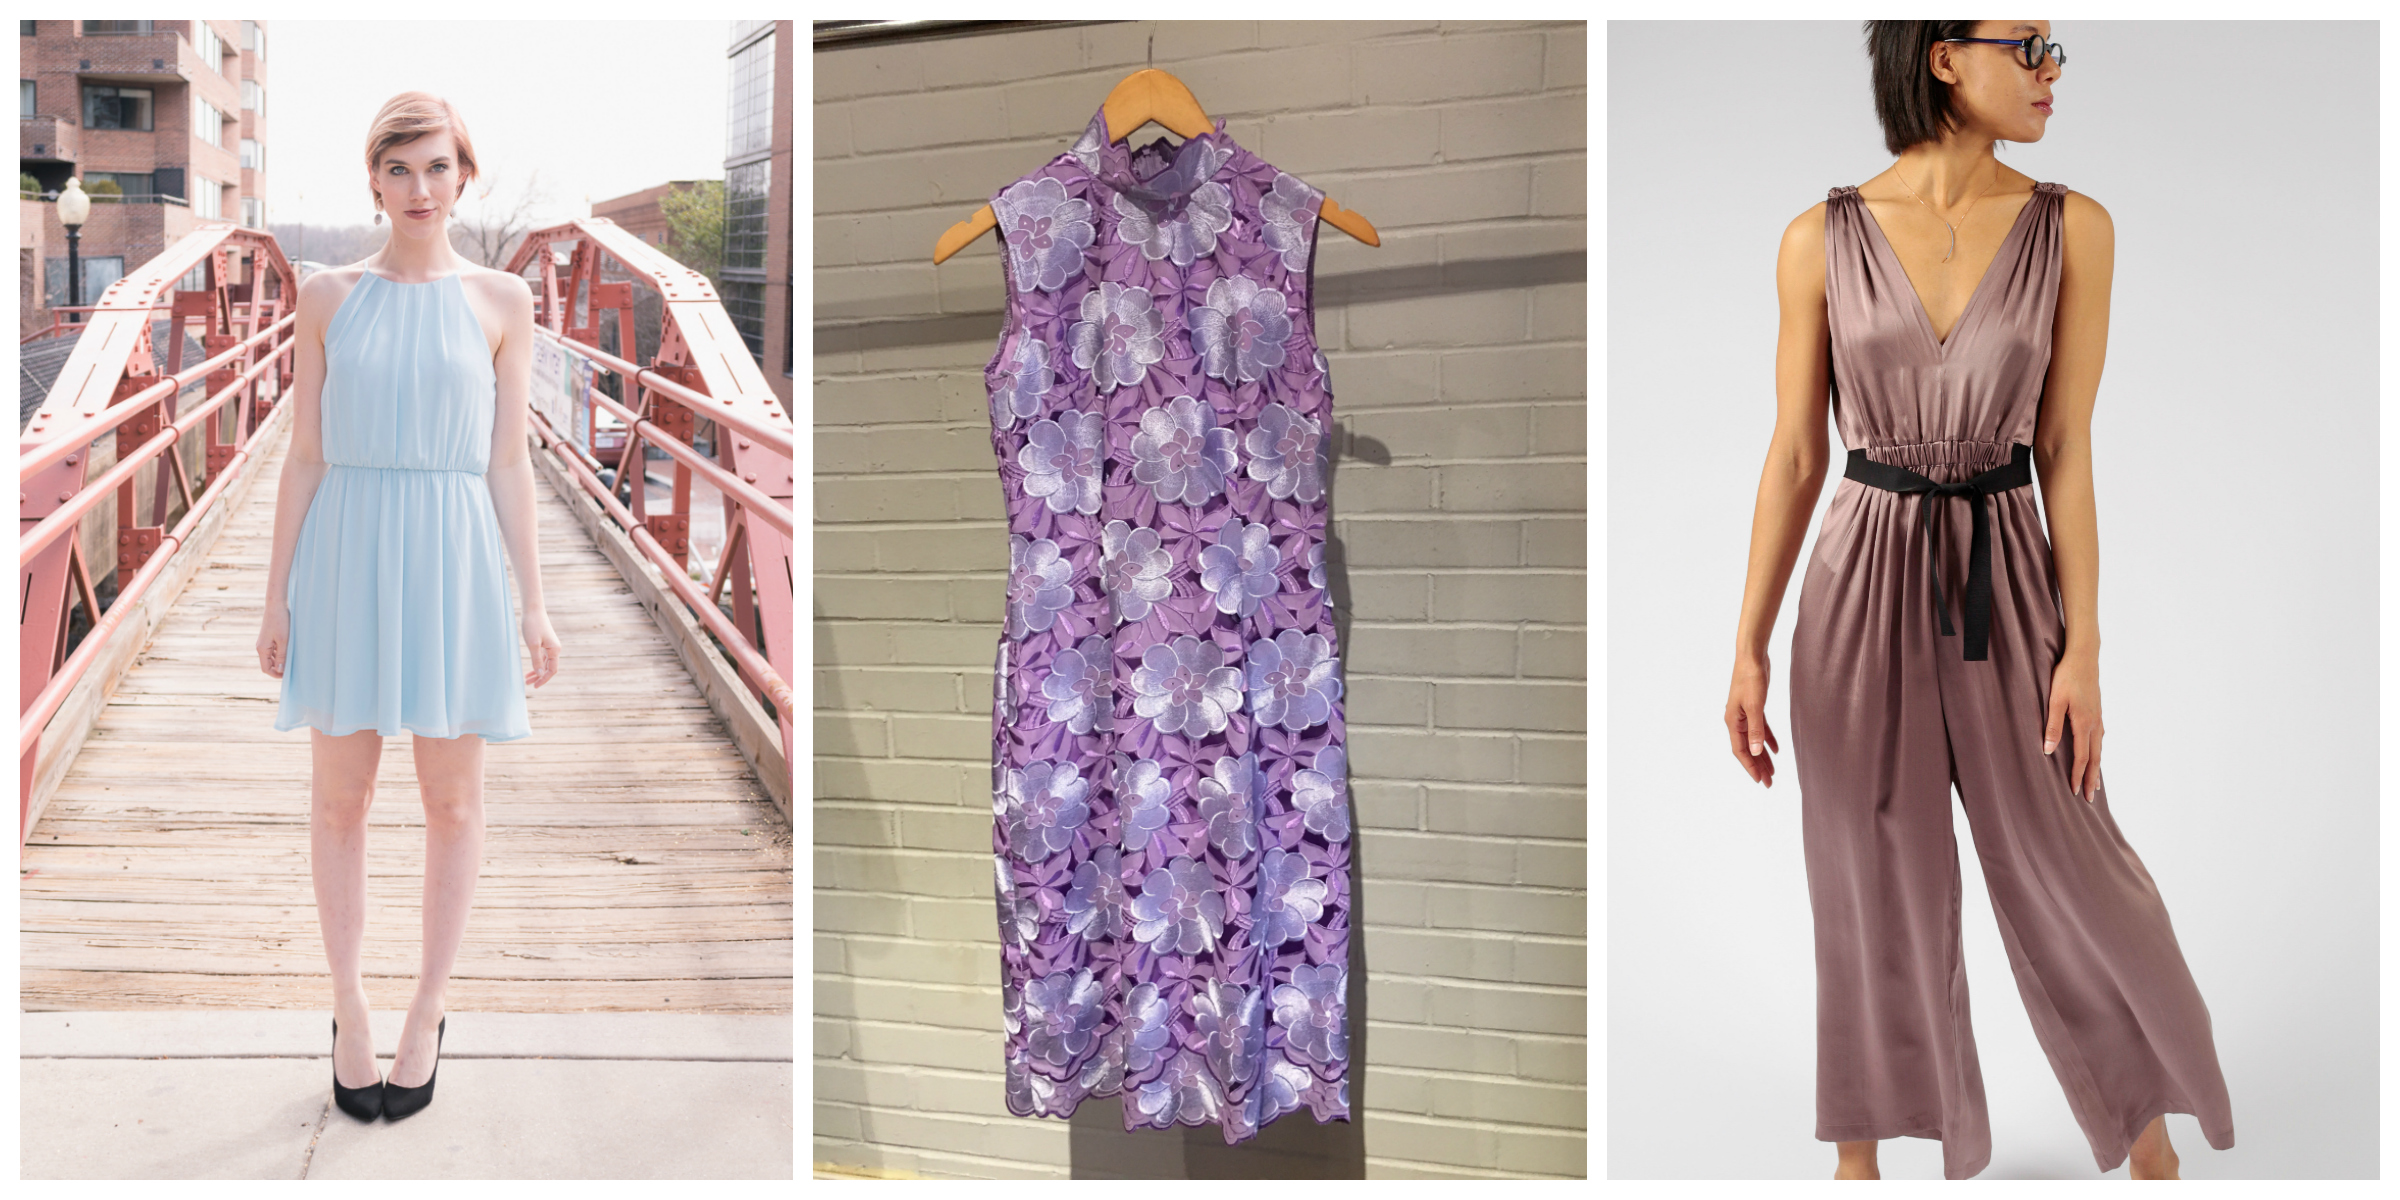 From solid-colored frocks that can be dressed up with chunky accessories or a dramatic hairdo, to wild patterns that need minimal styling and chic jumpsuits, we've got an option for every type of wedding guest. So if you've got a spring soiree and need to dress to impress, check out our 10 recommendations all from local boutiques below. (Images: Courtesy Violet Boutique, Current Boutique and Betsy Fisher, from L to R)